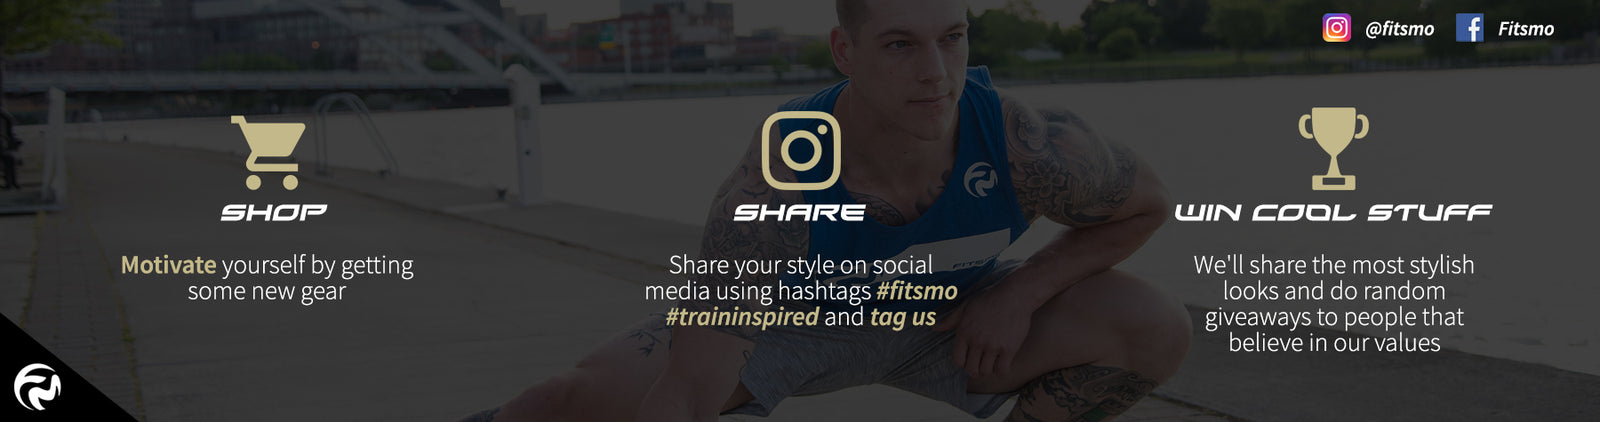 fitsmo social media instructions